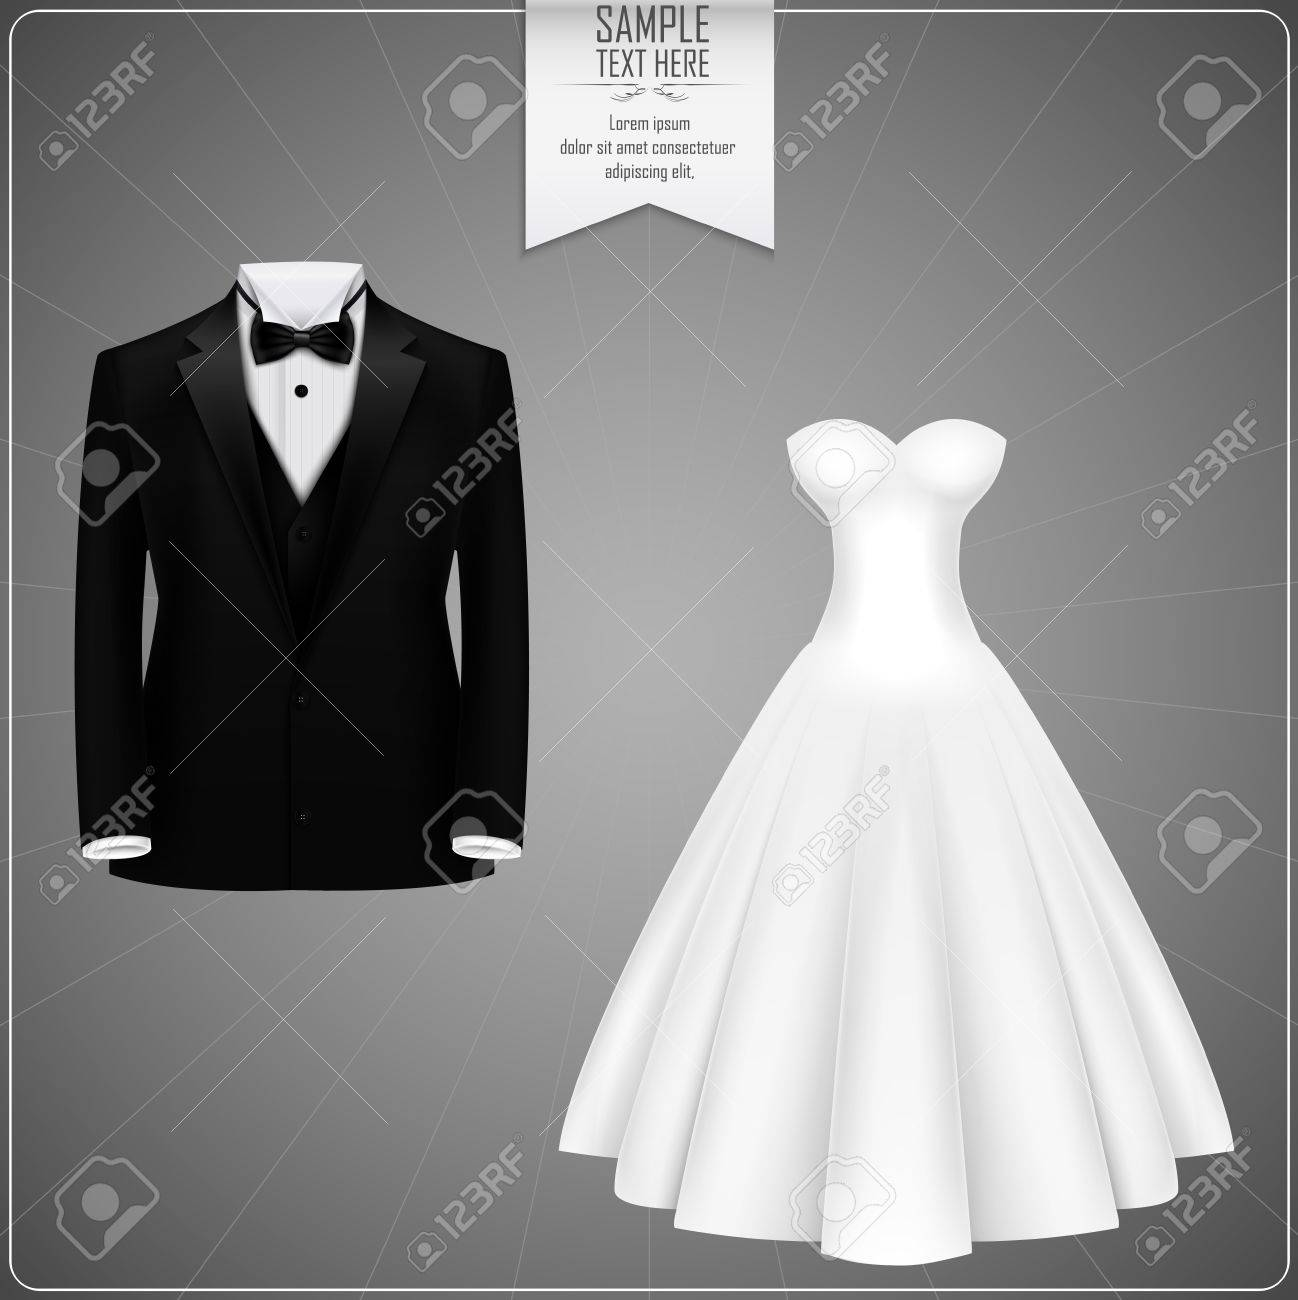 Black Tuxedo And White Bridal Gown Stock Photo, Picture And Royalty ...